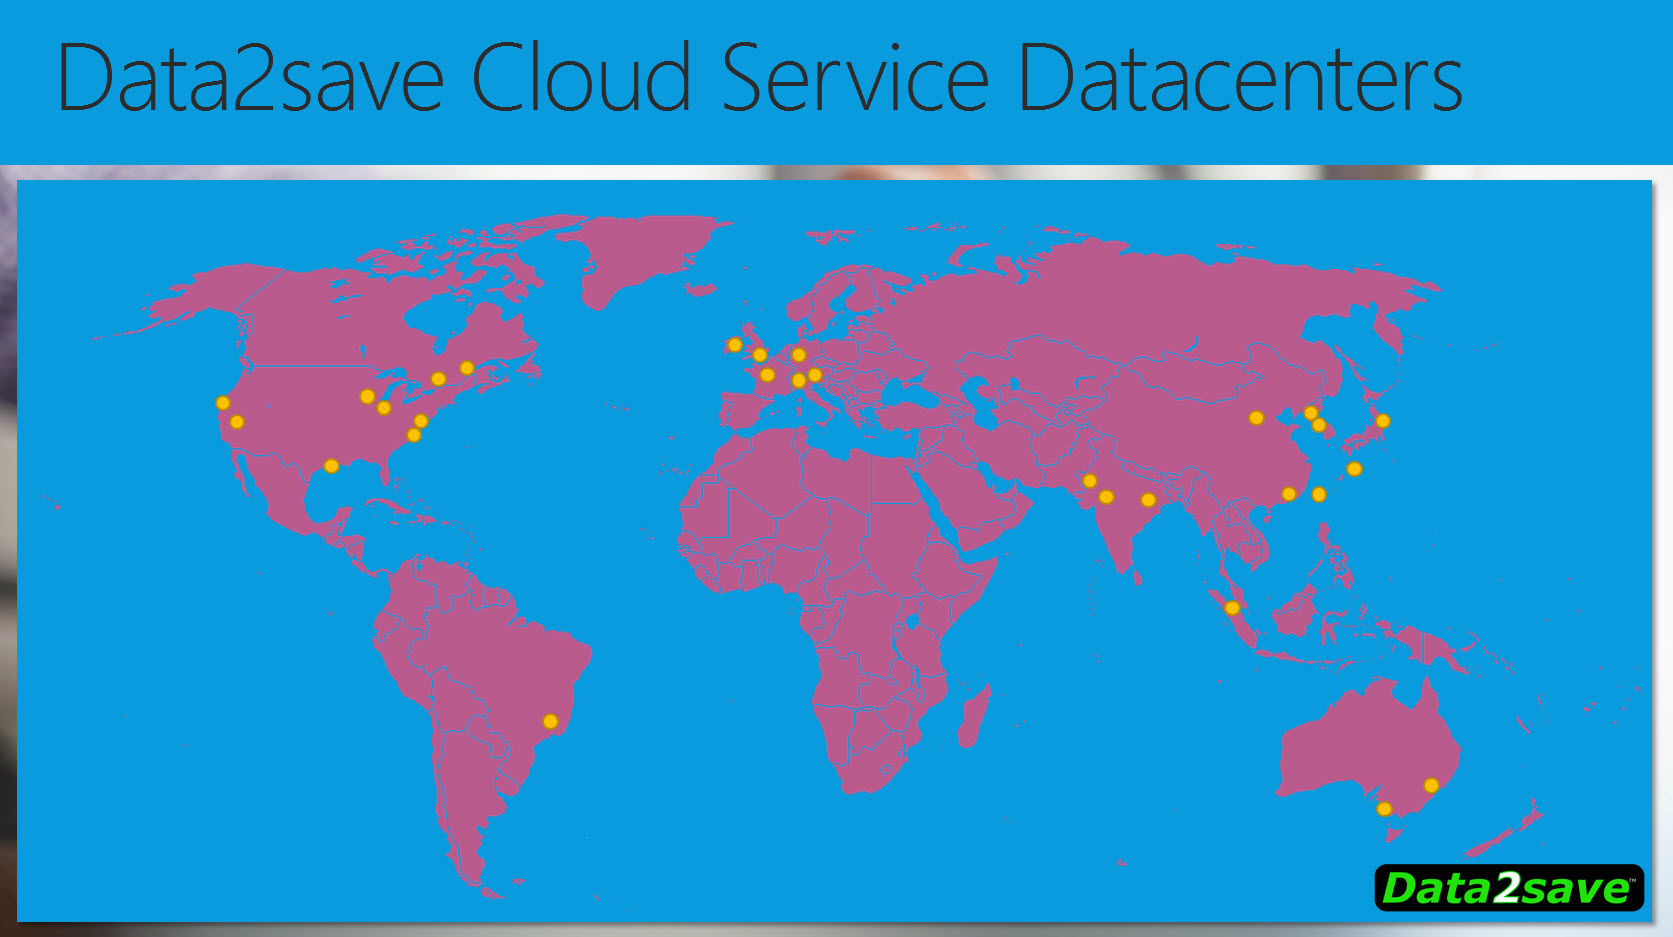 Data2save Worldwide Datacenters Map